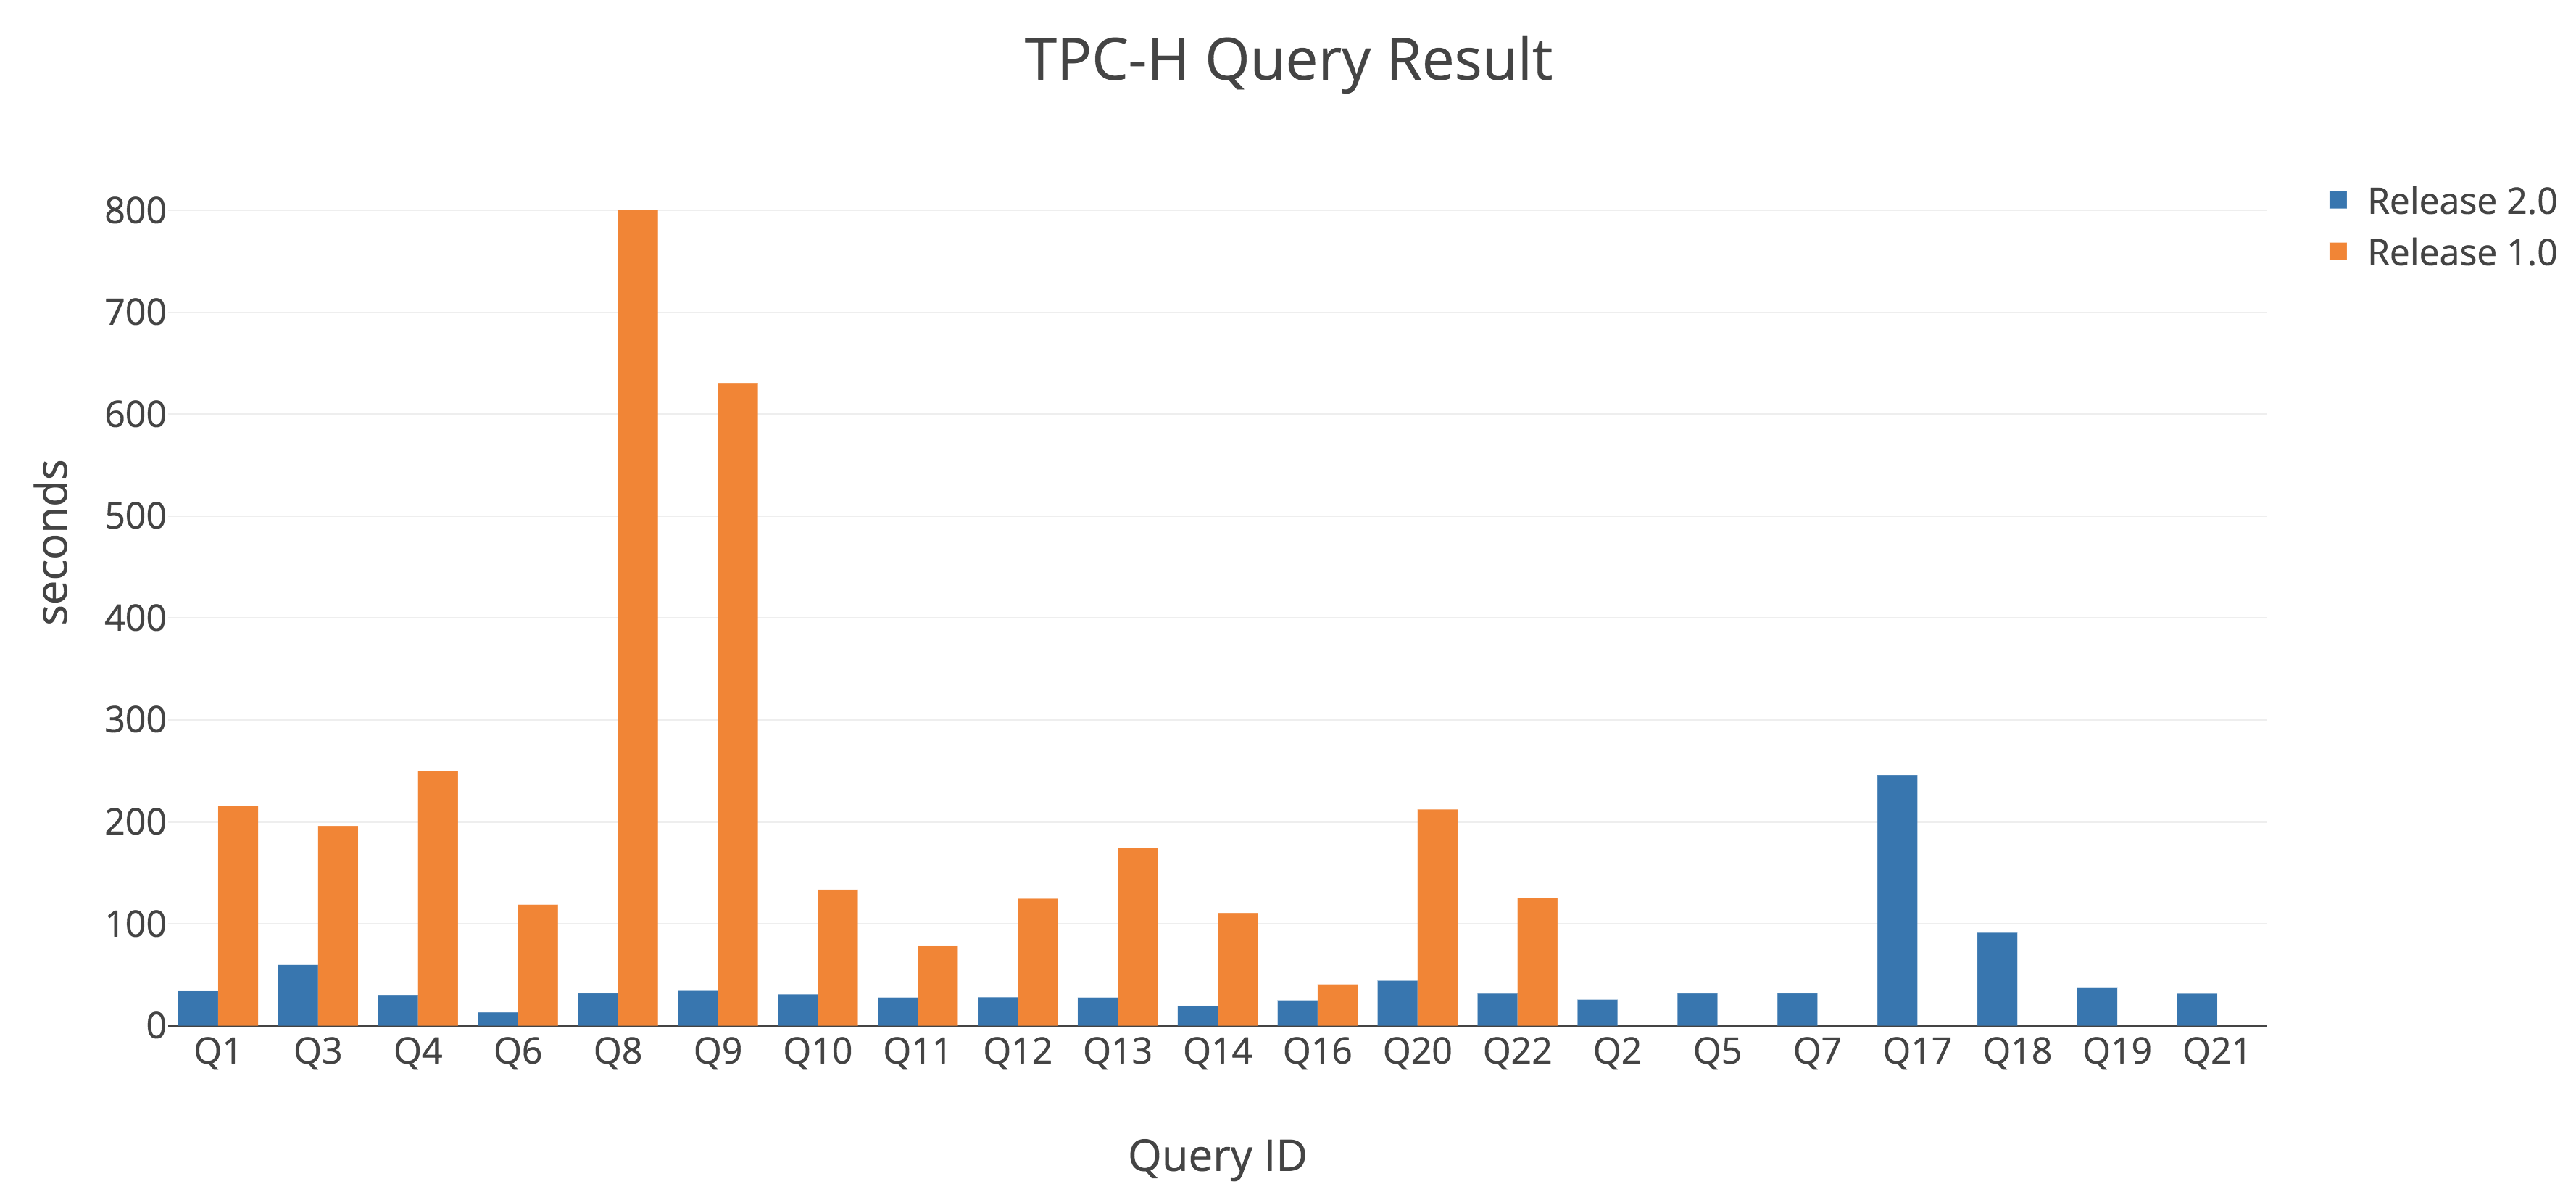 TPC-H Query Result